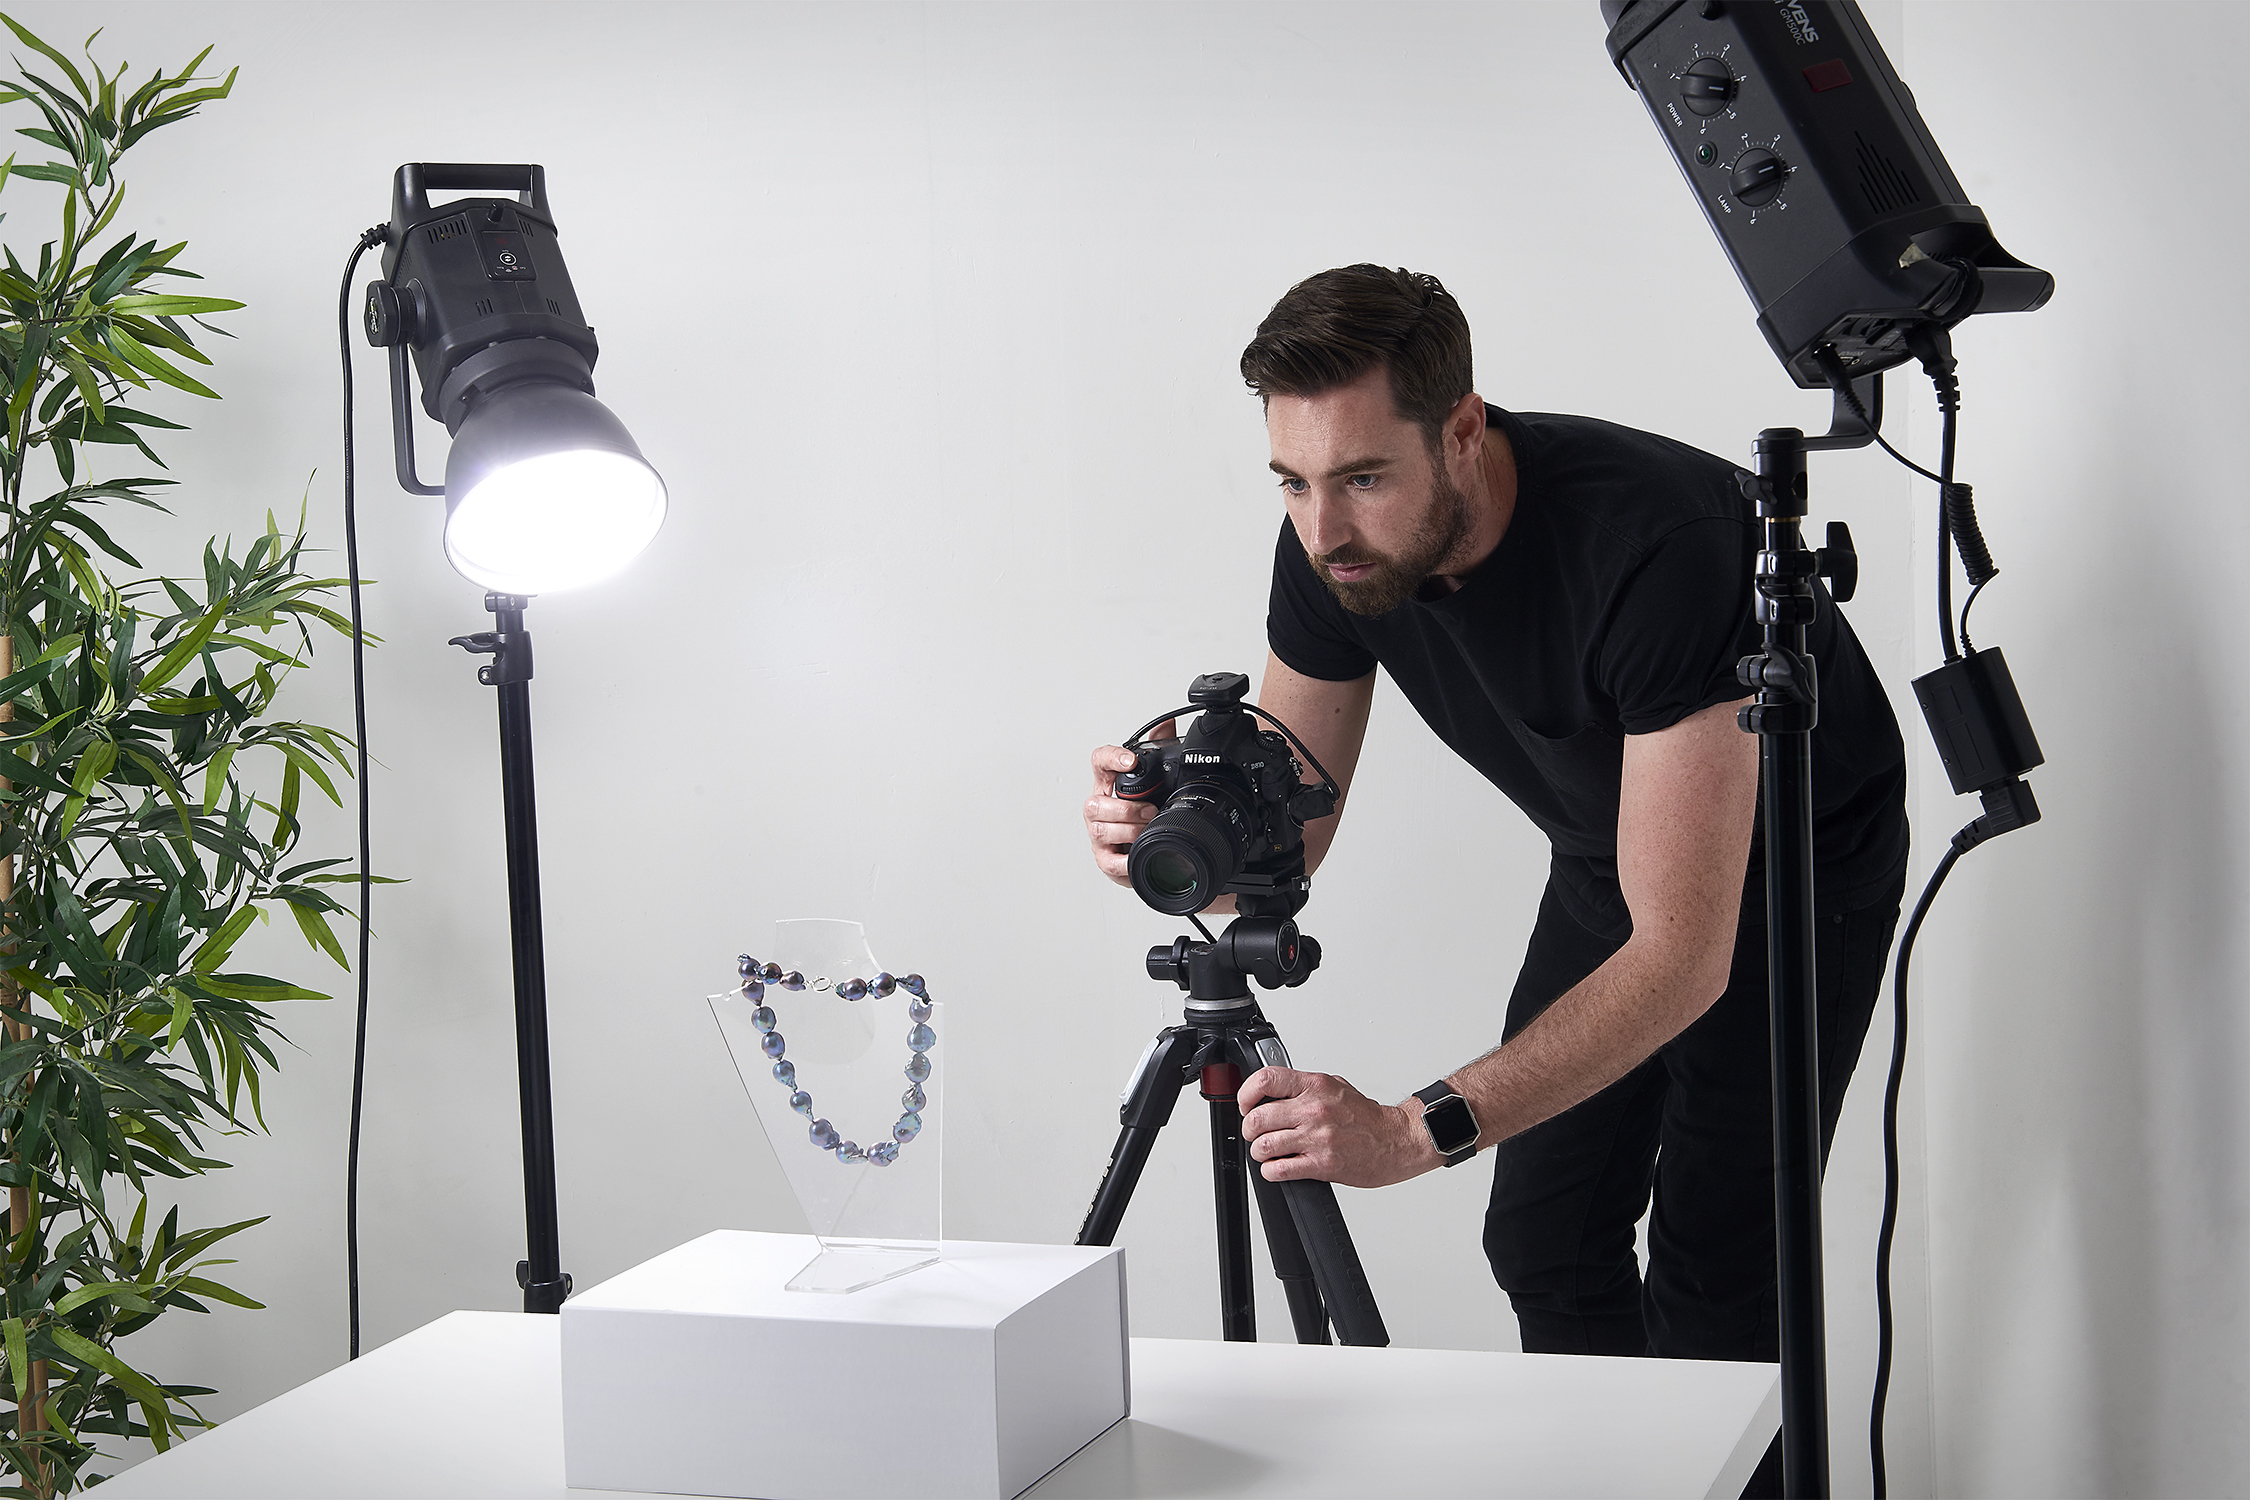 - JEWELLERY PHOTOGRAPHY, ART OR SCIENCE?People who purchase jewellery online like to know that what they see in the image is what they receive in the the box. But, it It takes a lot of skill to get images of jewellery looking crisp and lifelike. Read on to discover how... Read More…